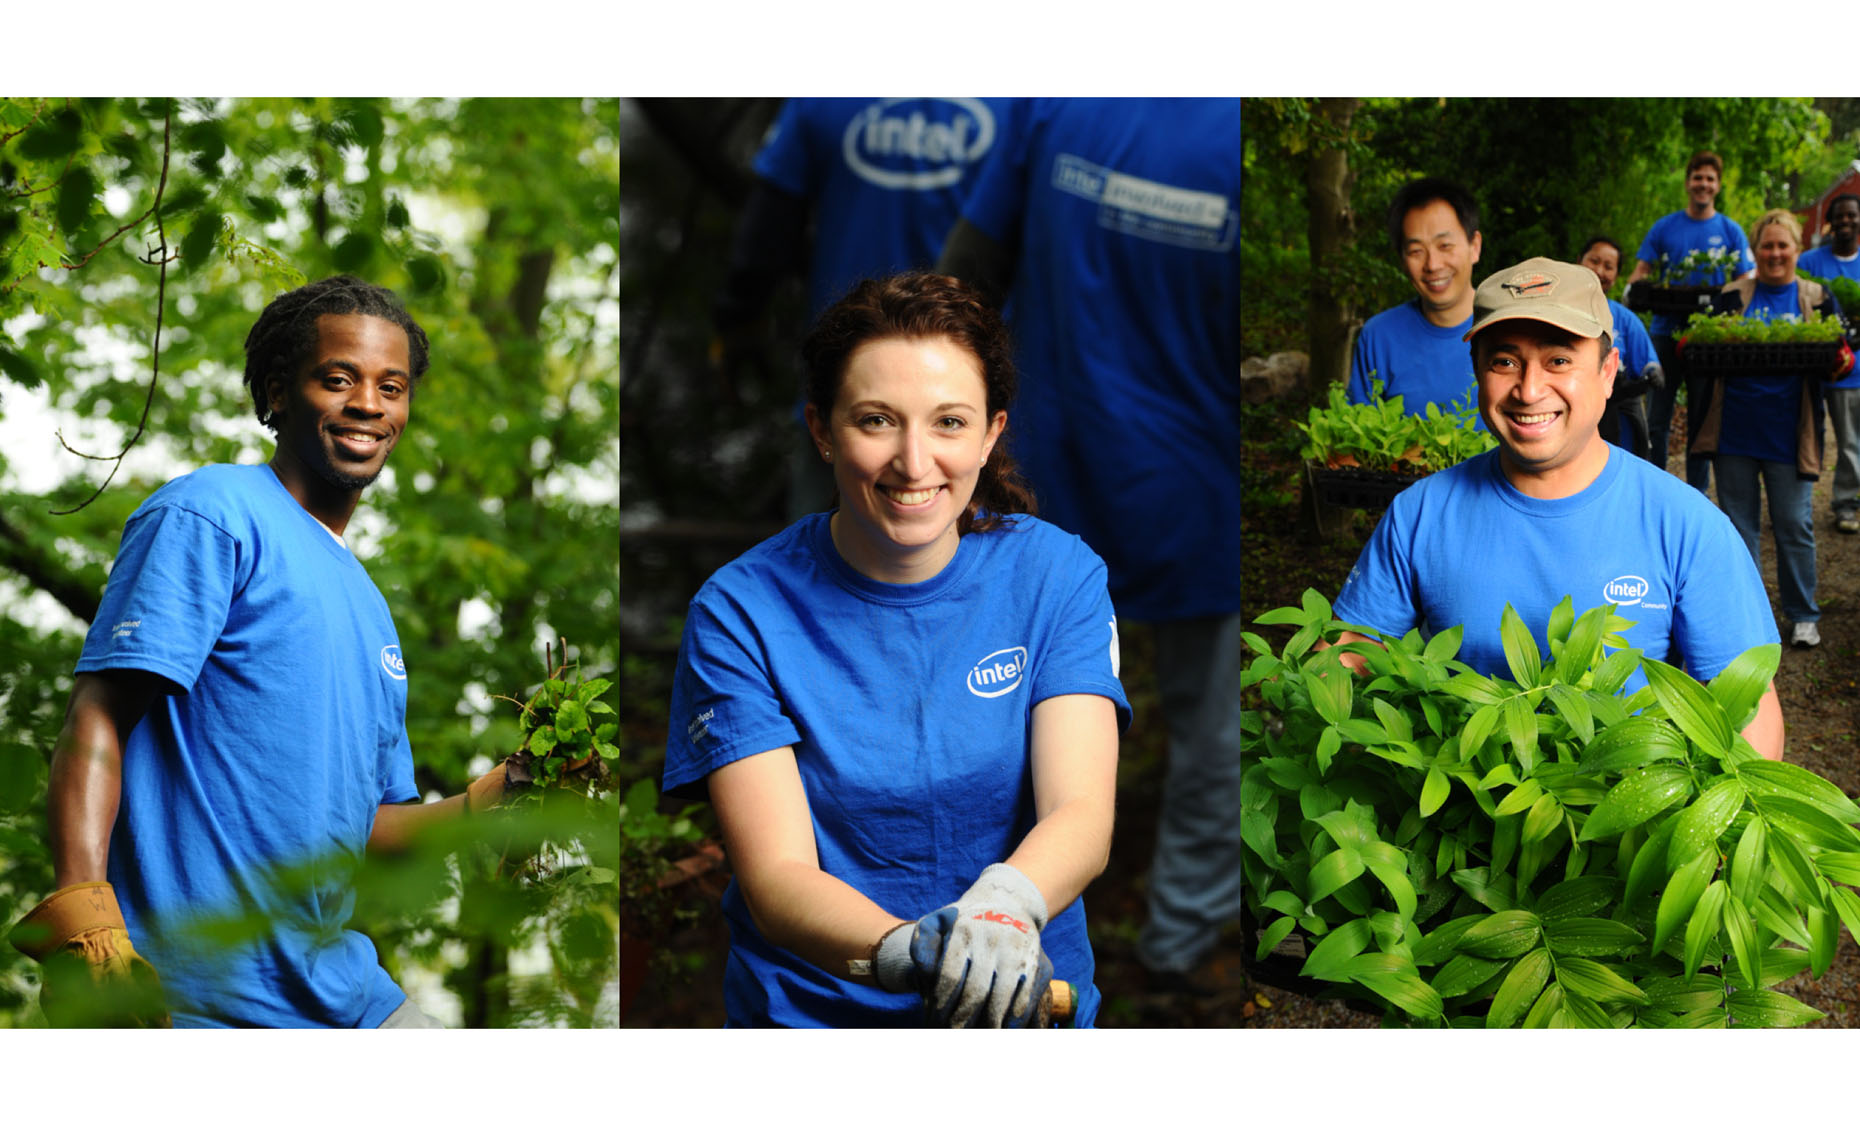 Intel Volunteers | Lincoln, MA